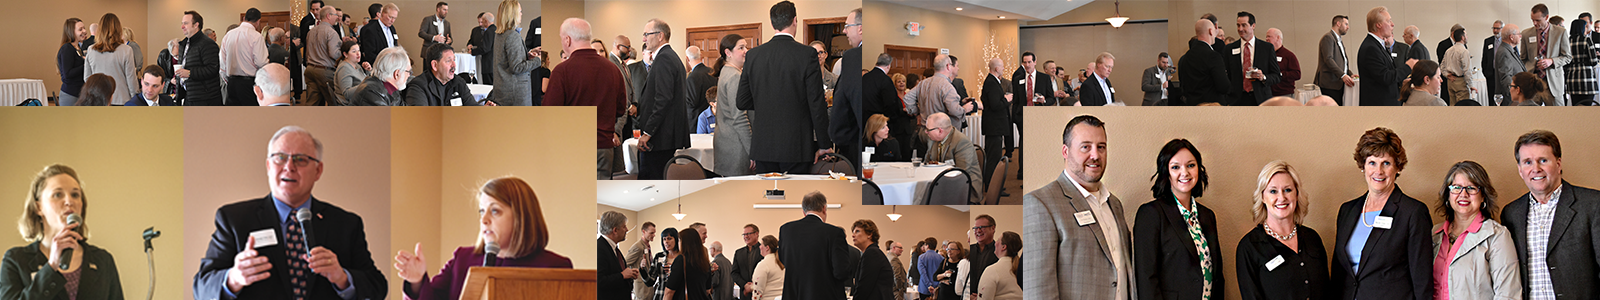 Legislative-Reception-Banner-1600px-x-300px.png